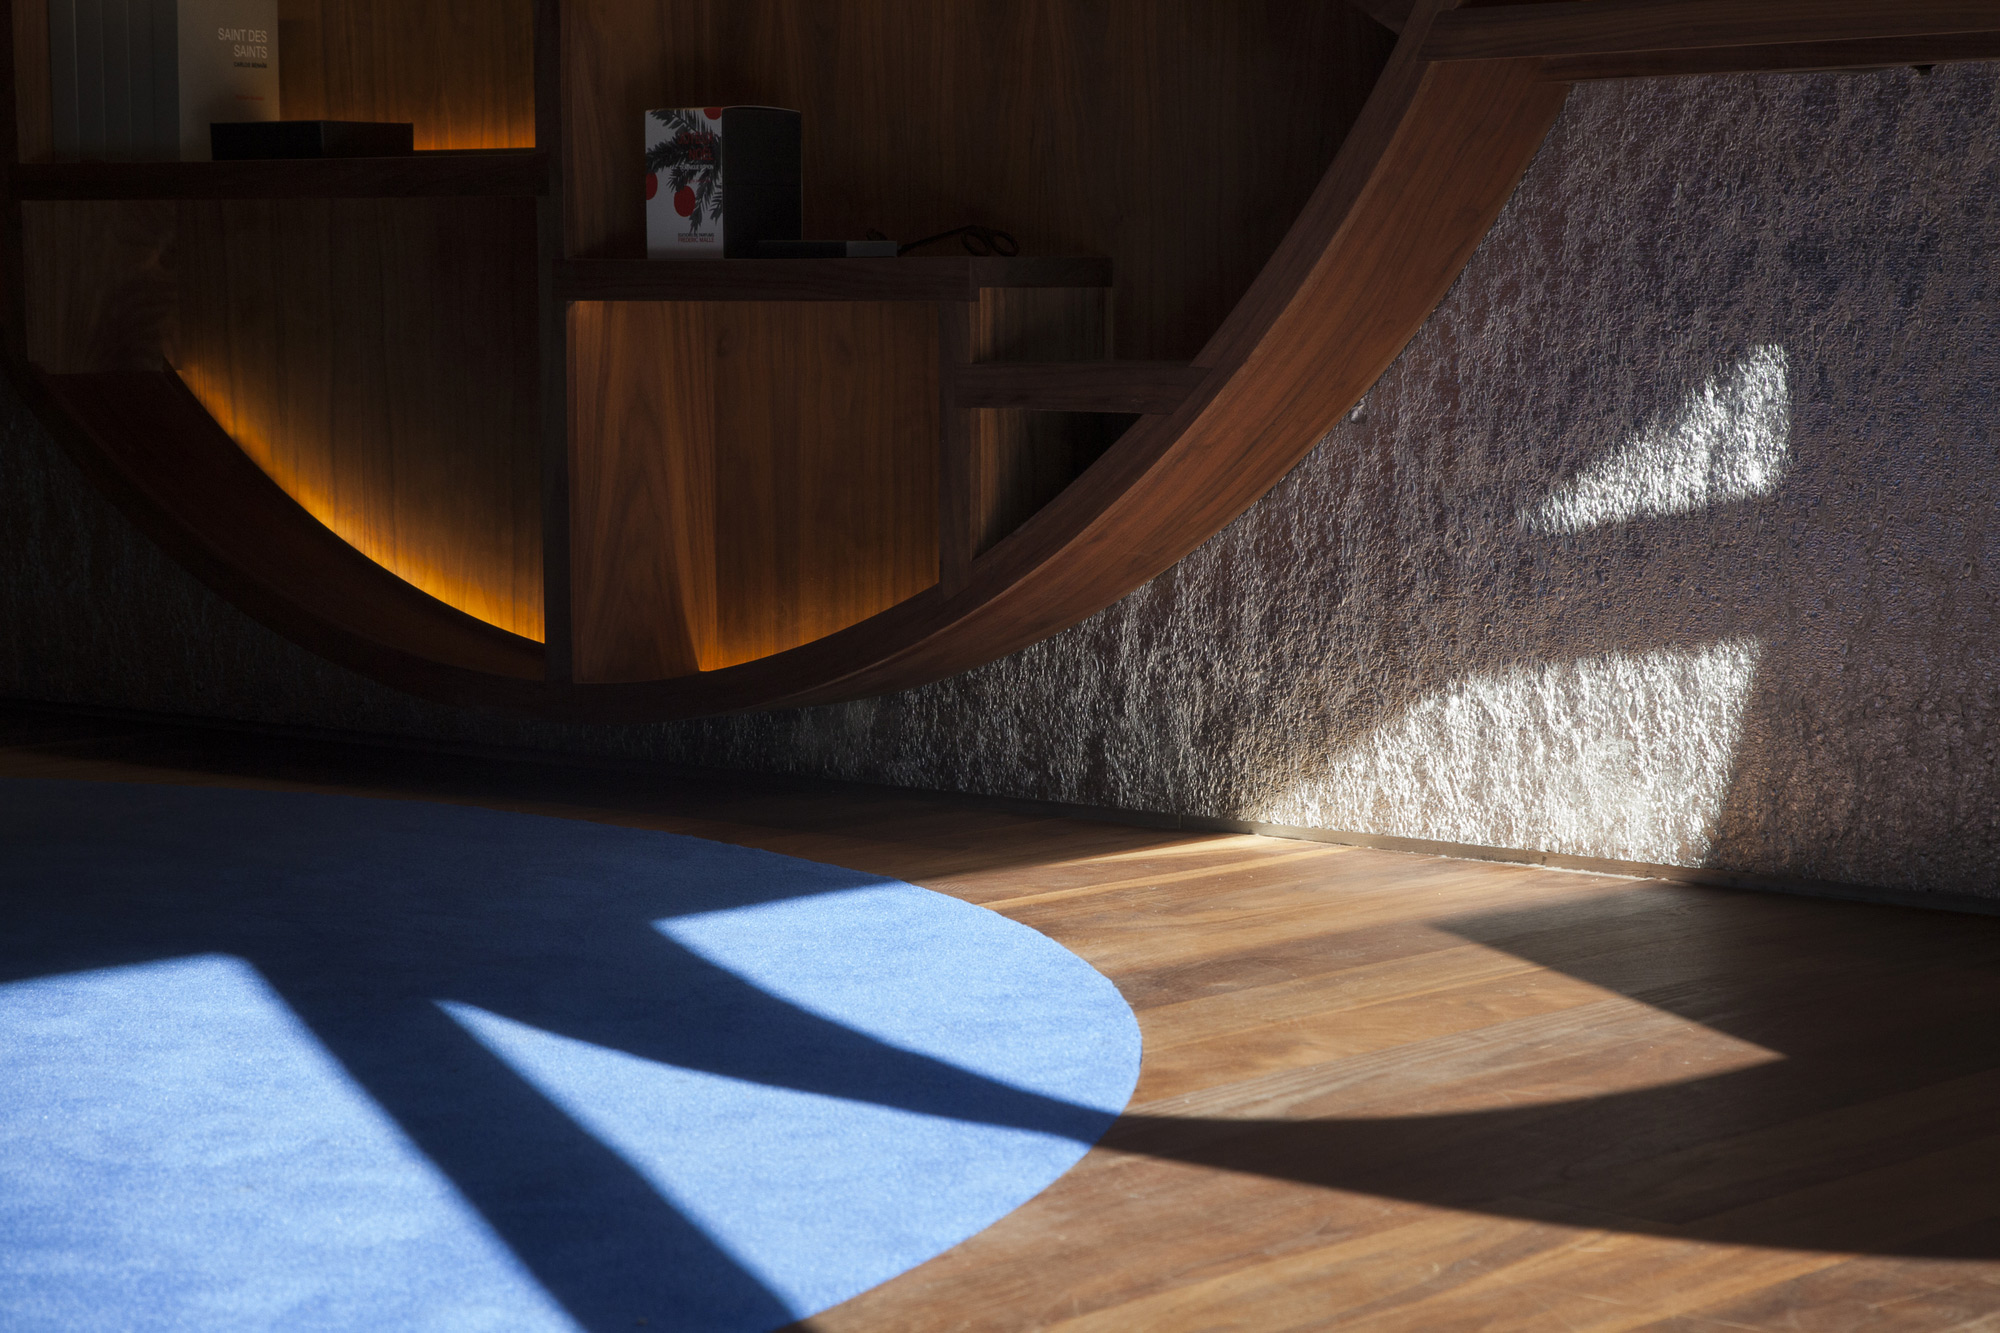 Frederic Malle / Steven Holl Architects (20)